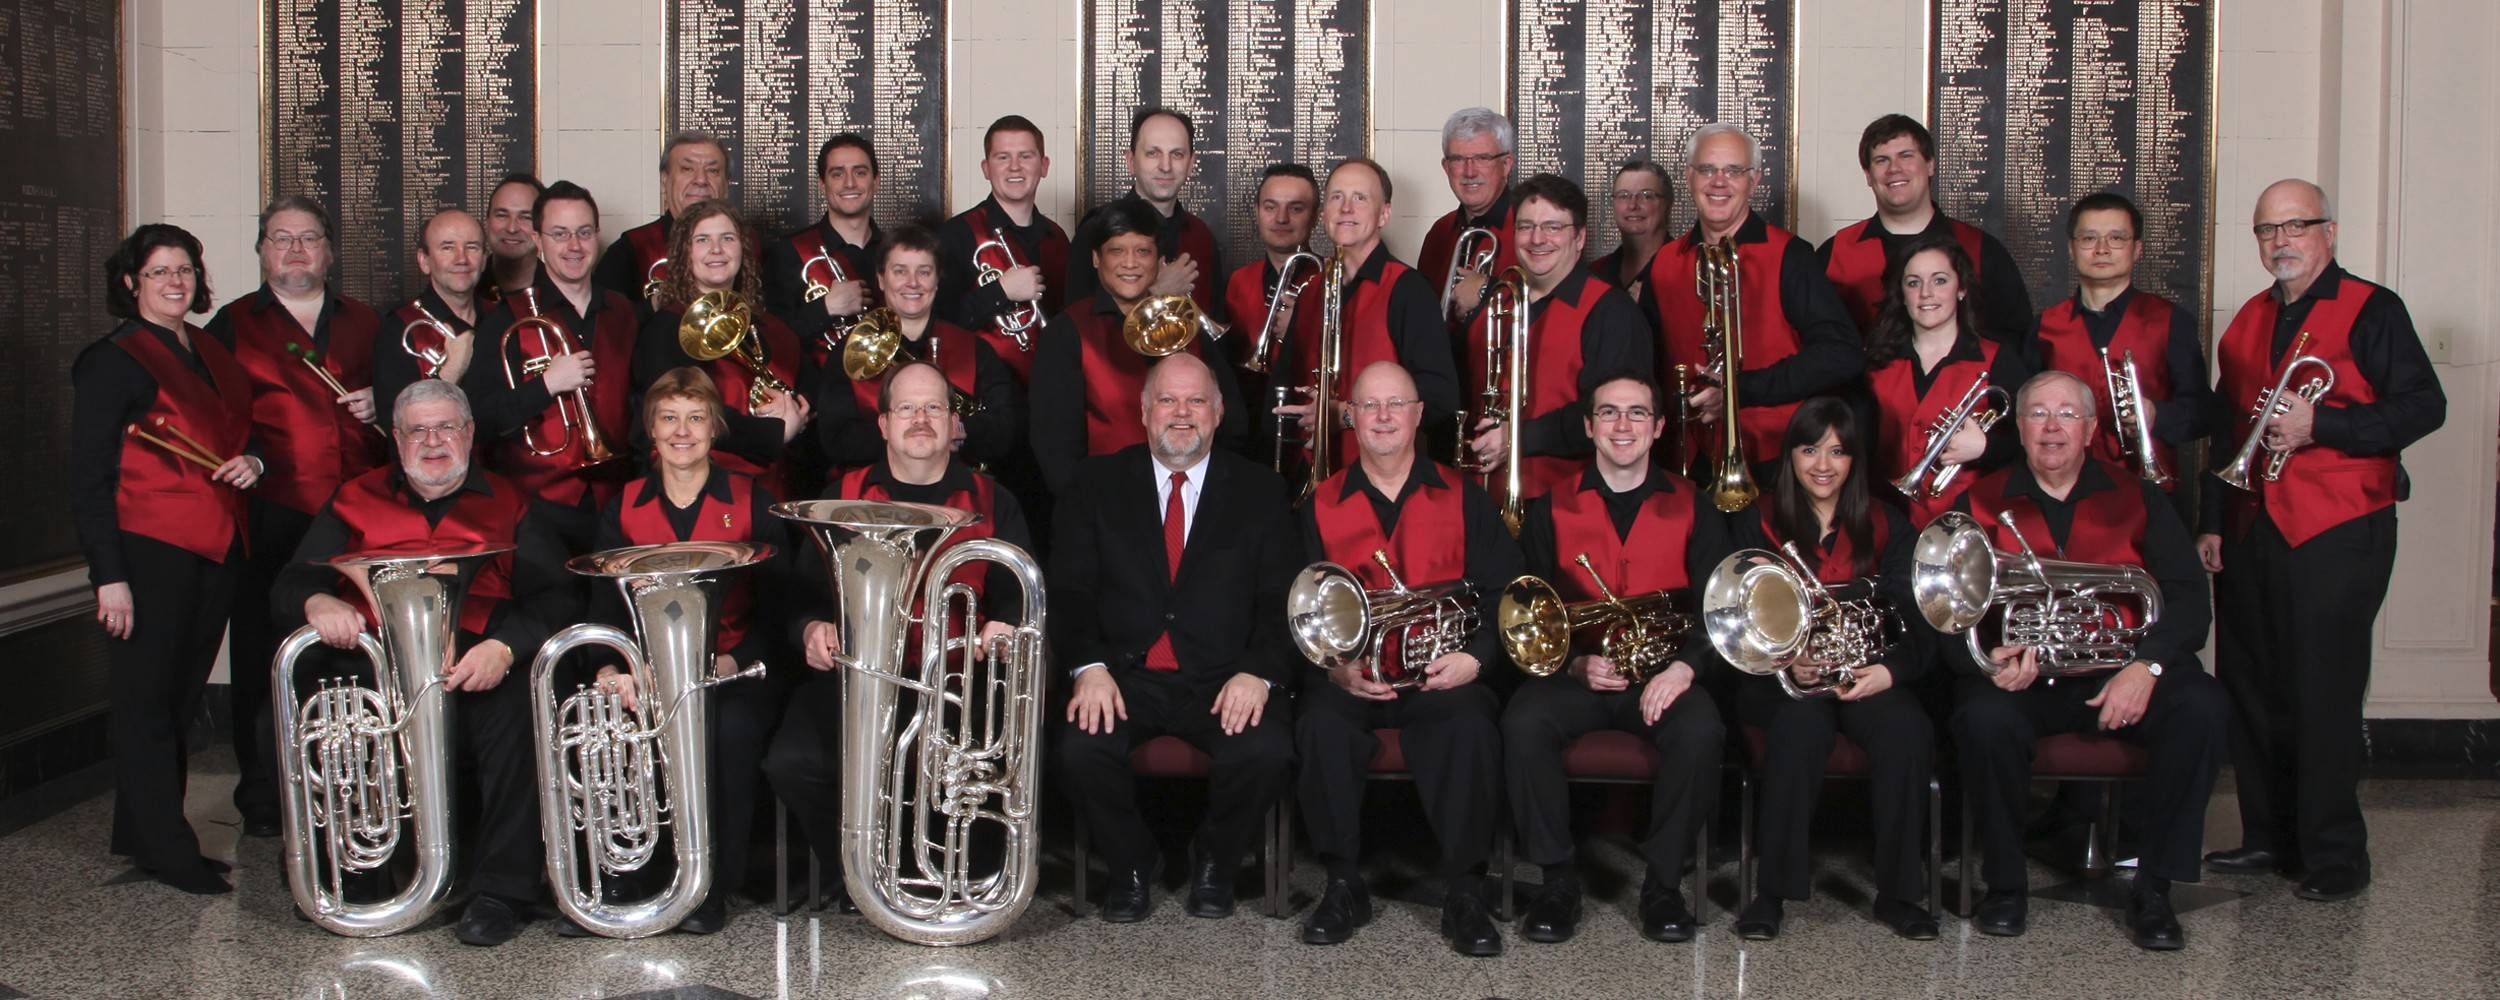 "The Illinois Brass Band  presents its ""Brass Spectacular"" concert."